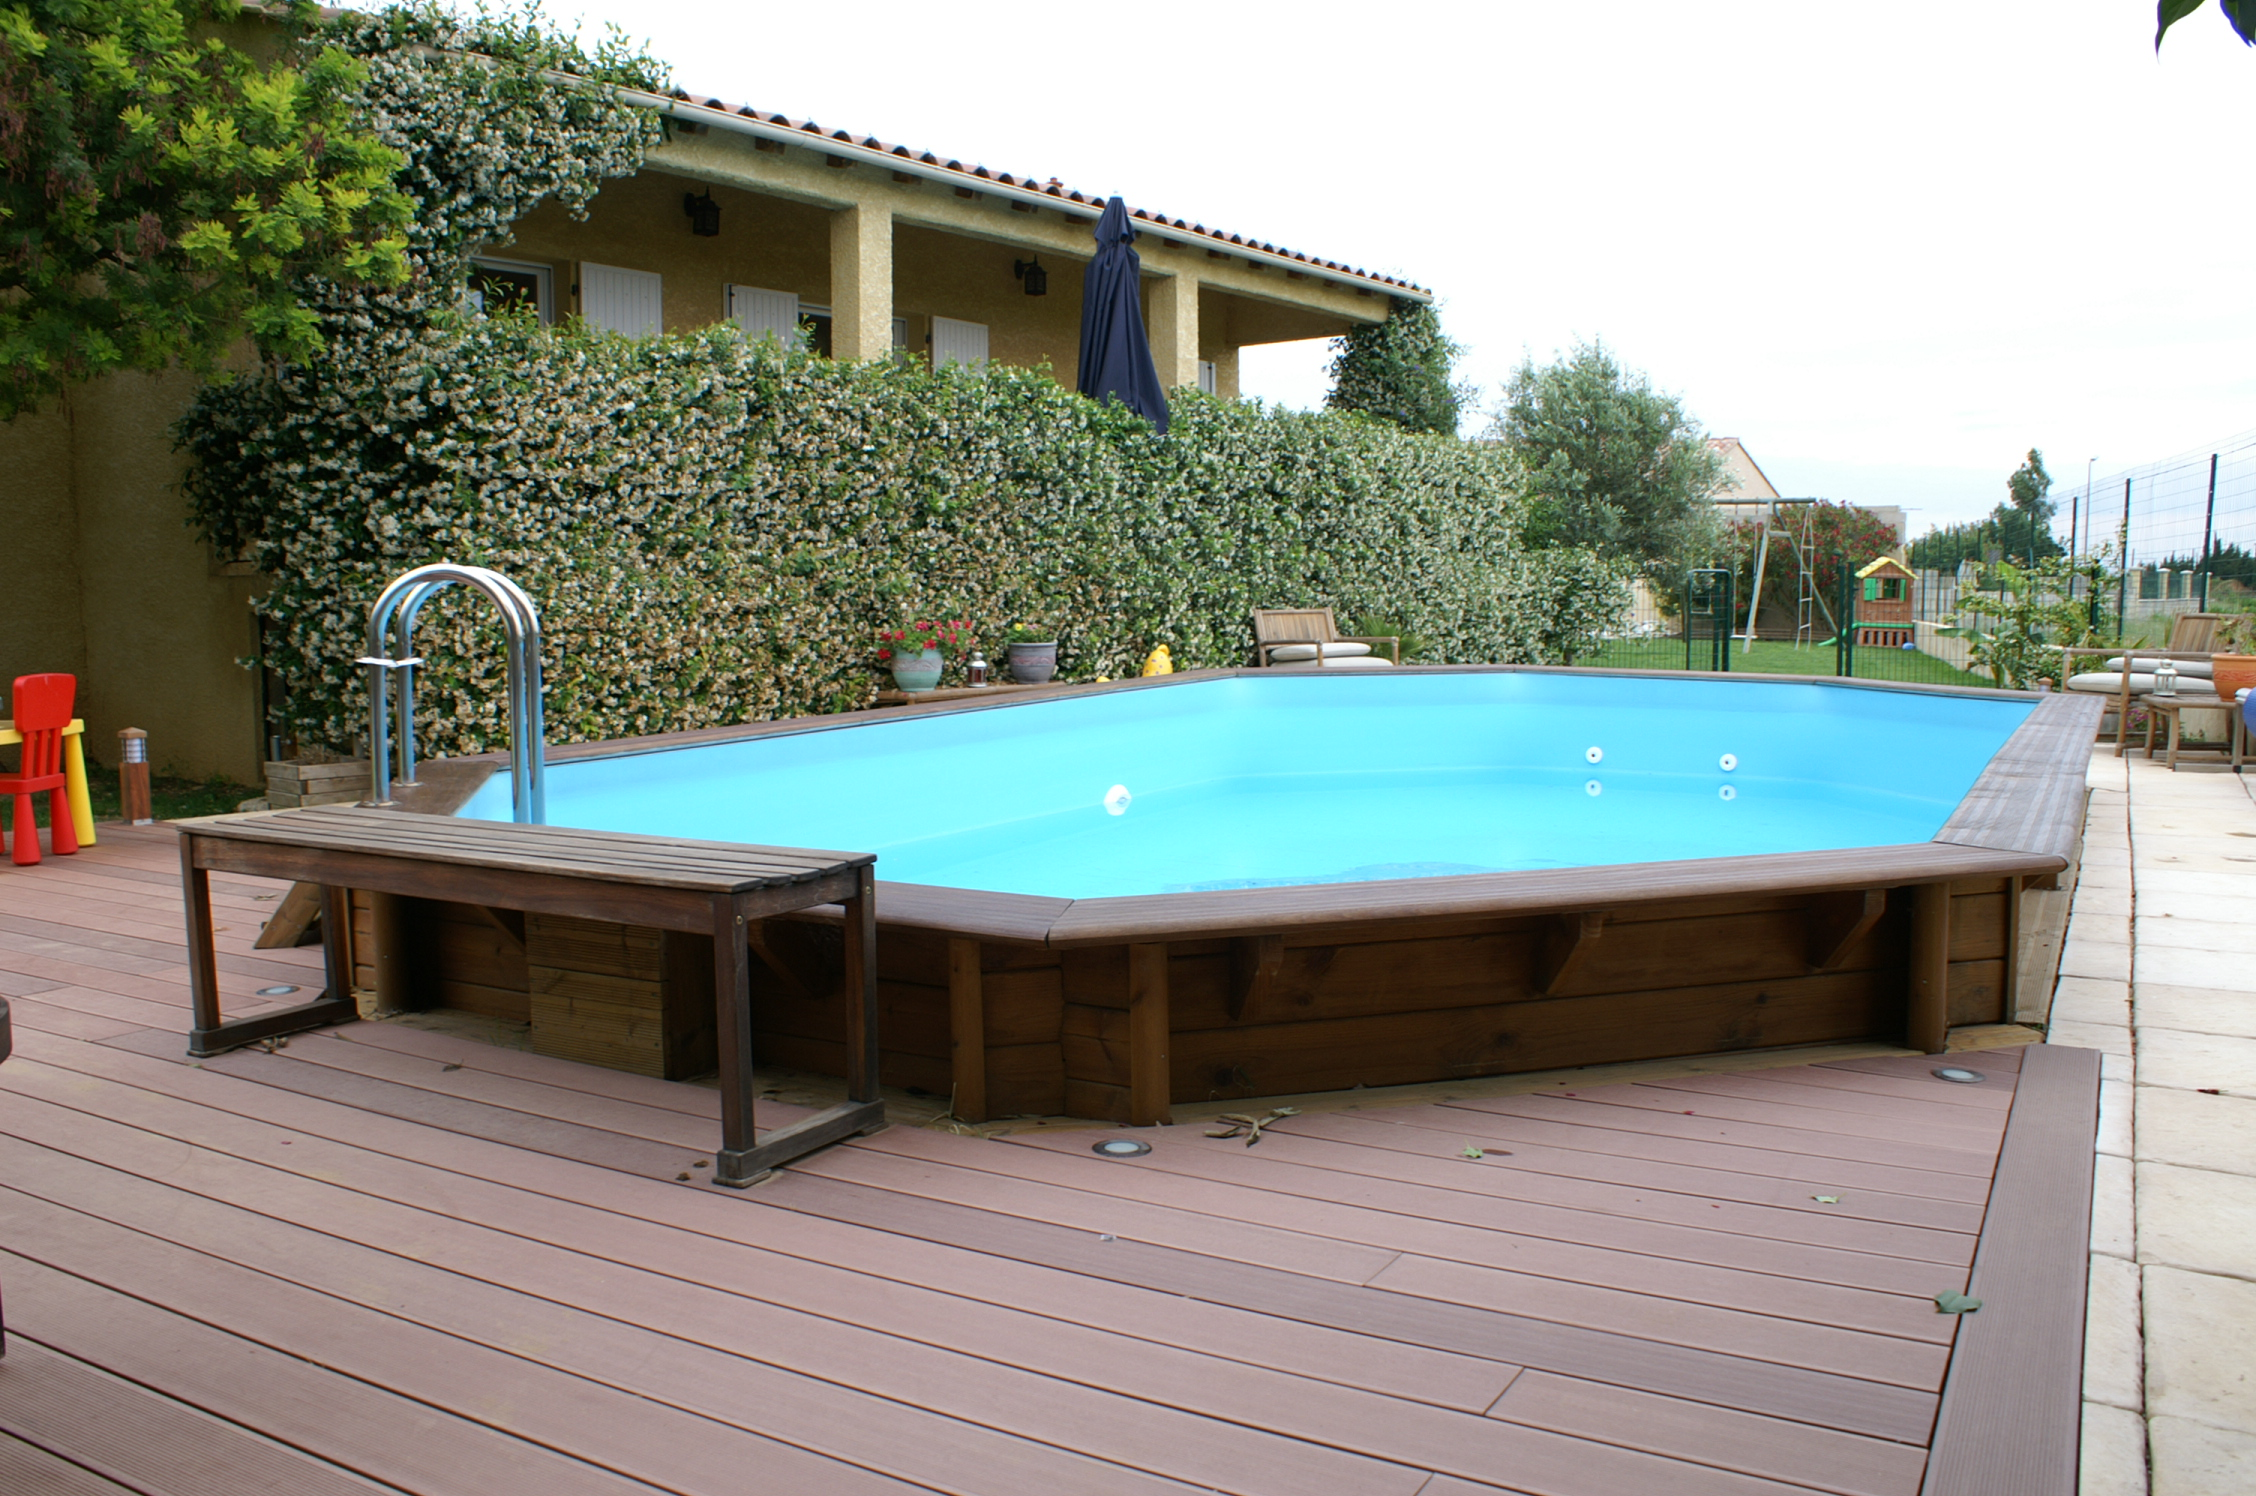 Construction piscines nimes gepad piscines et spa 30000 for Piscine hors sol lyon